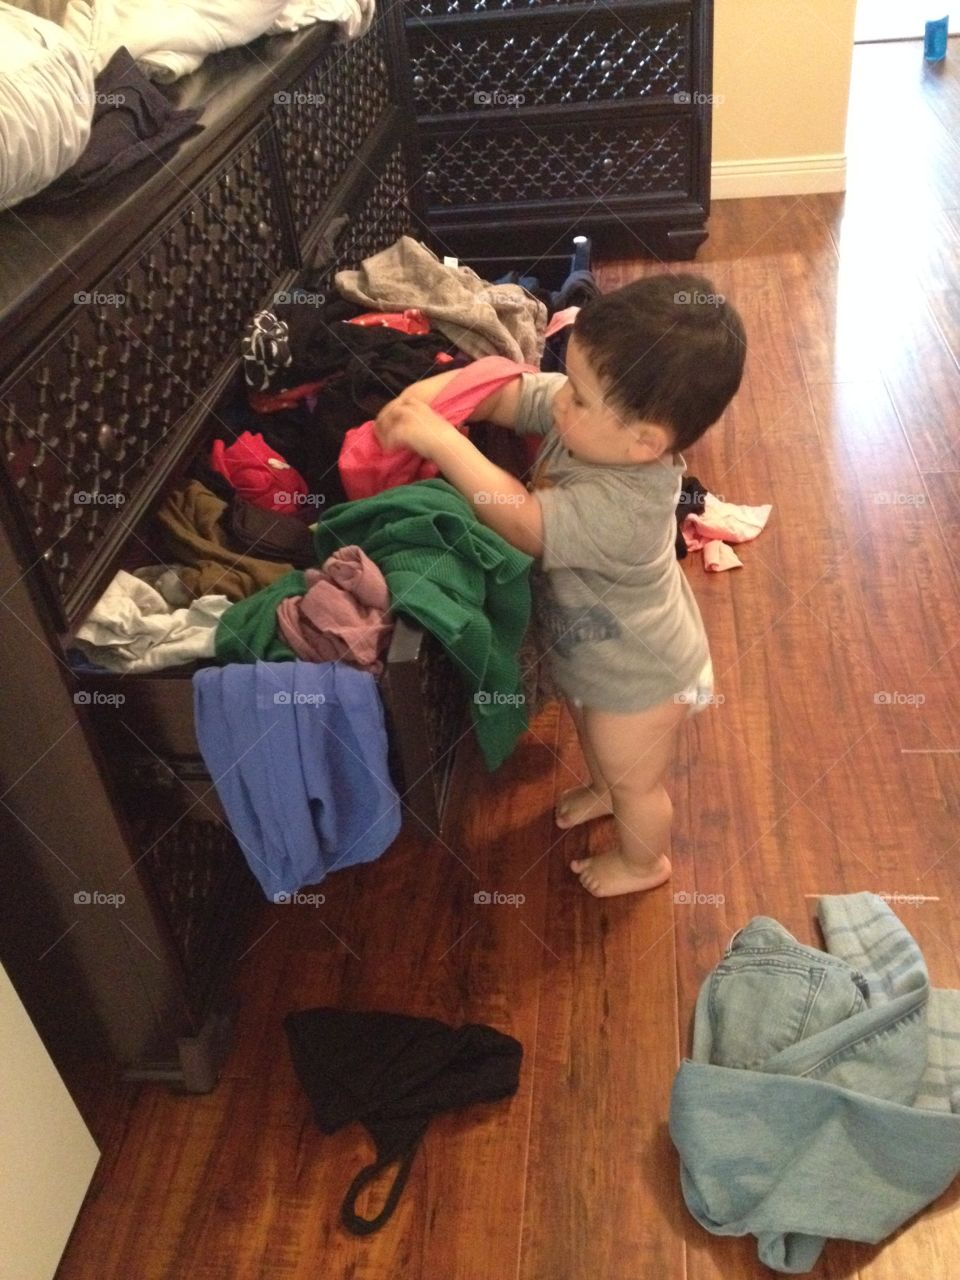 Making a mess. Clothes